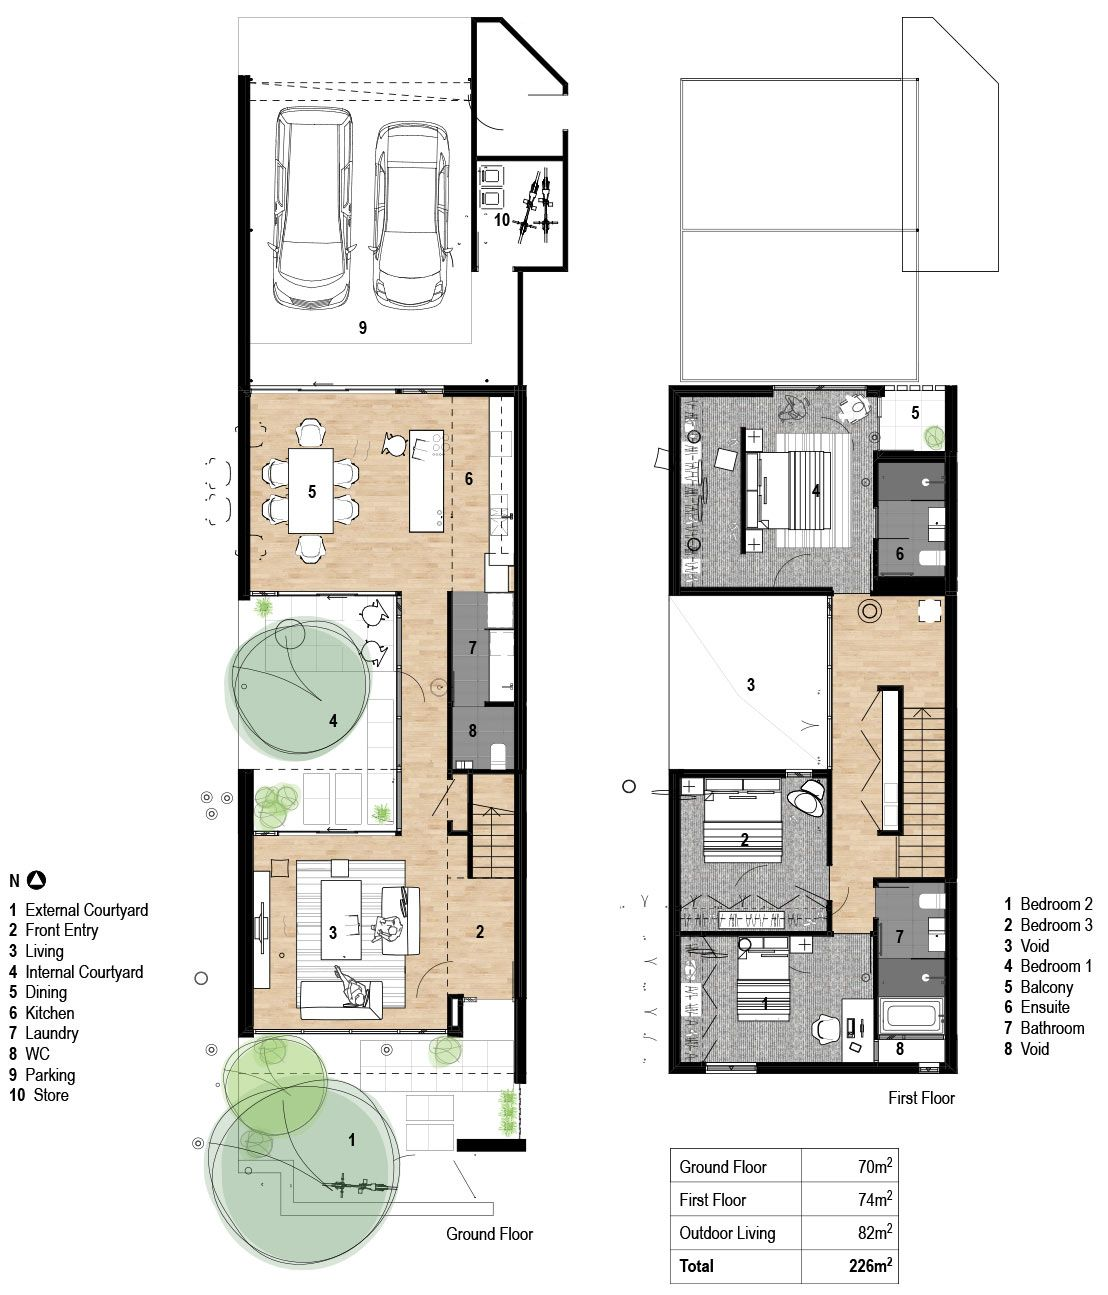 terrace home   Architecture PlanSimple. terrace home   GOR Glenuga   Pinterest   Terrace and Home